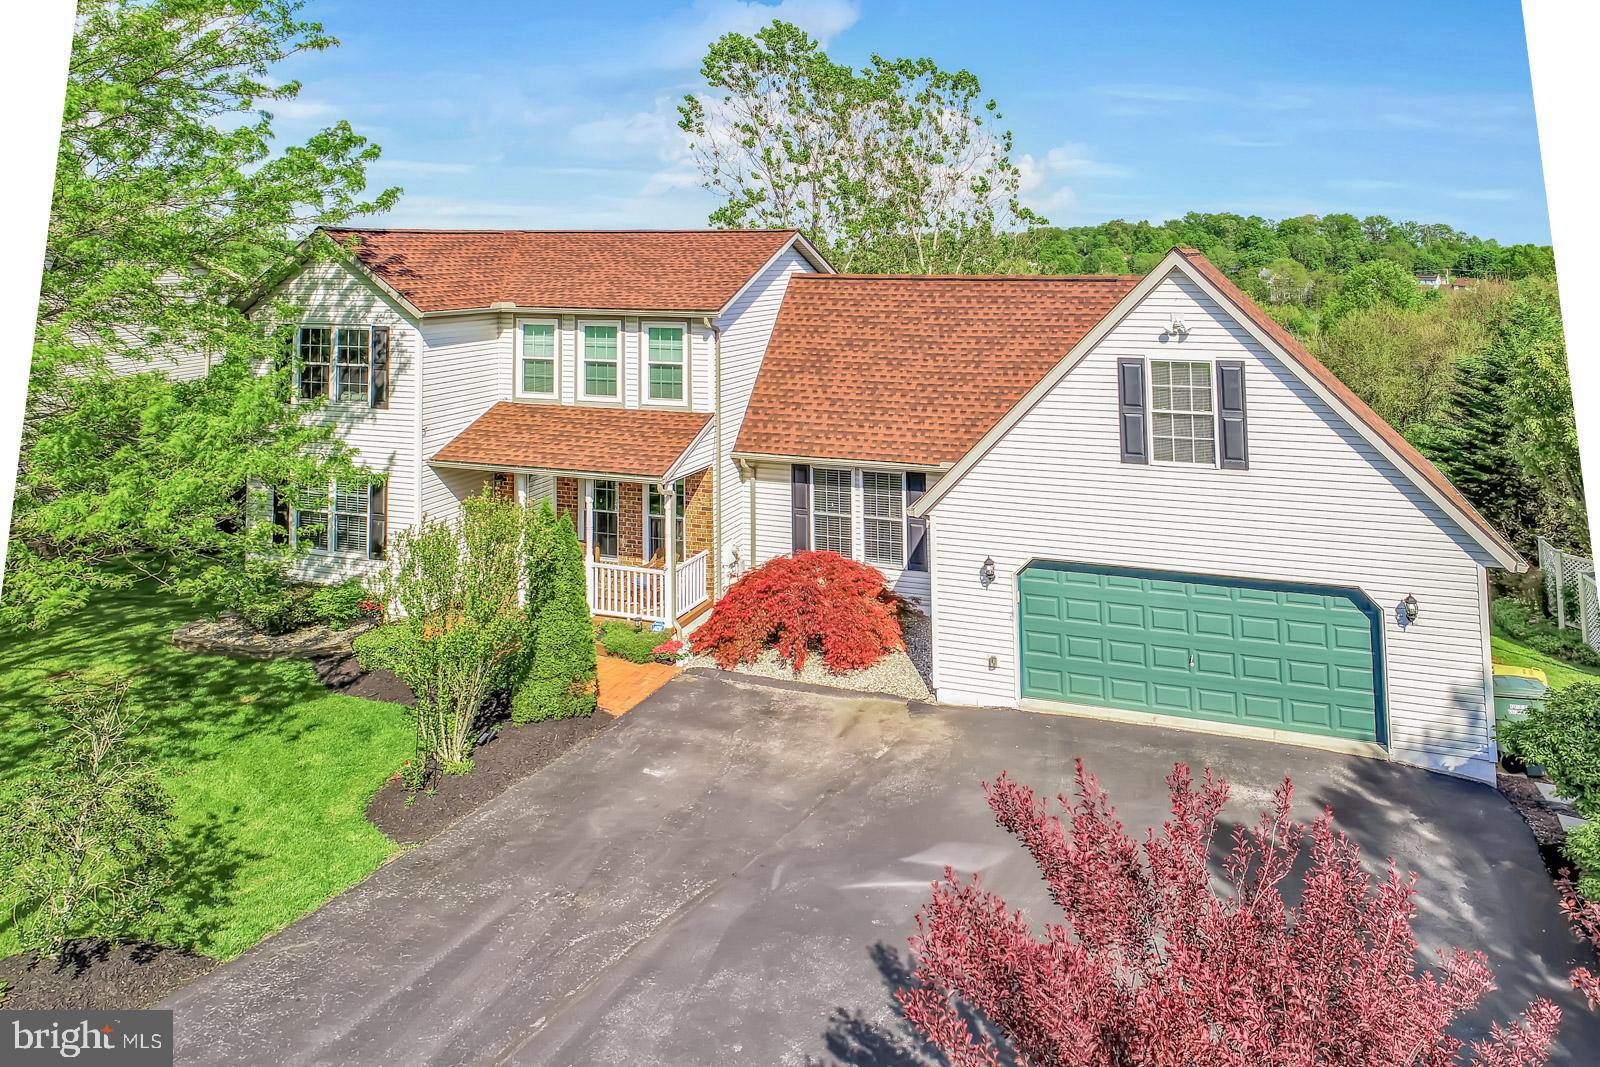 66 PISTON COURT, STEWARTSTOWN, PA 17363